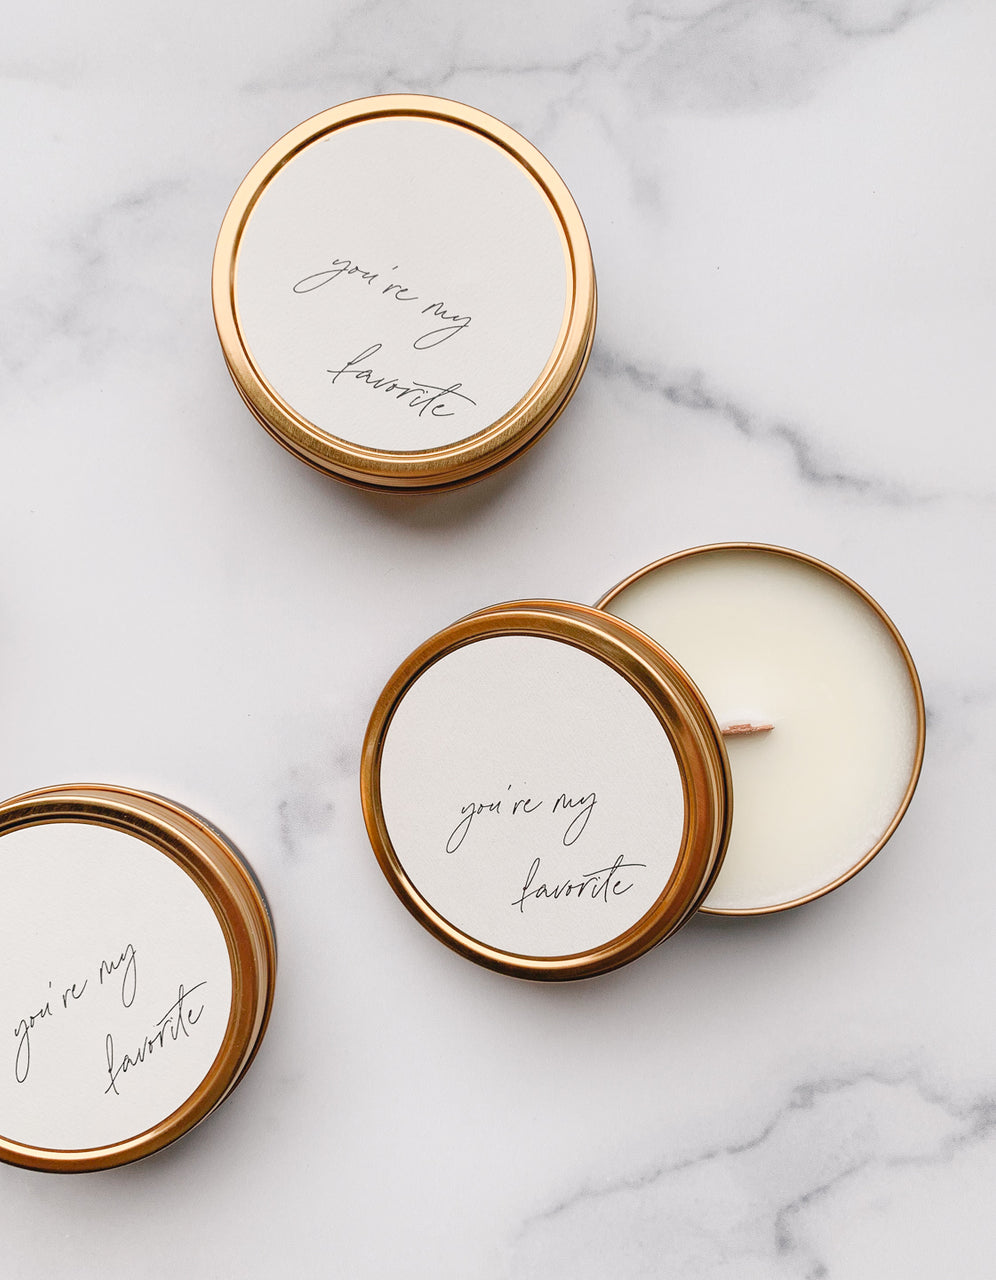 """You're My Favorite"" - Limited Edition Travel Candle"